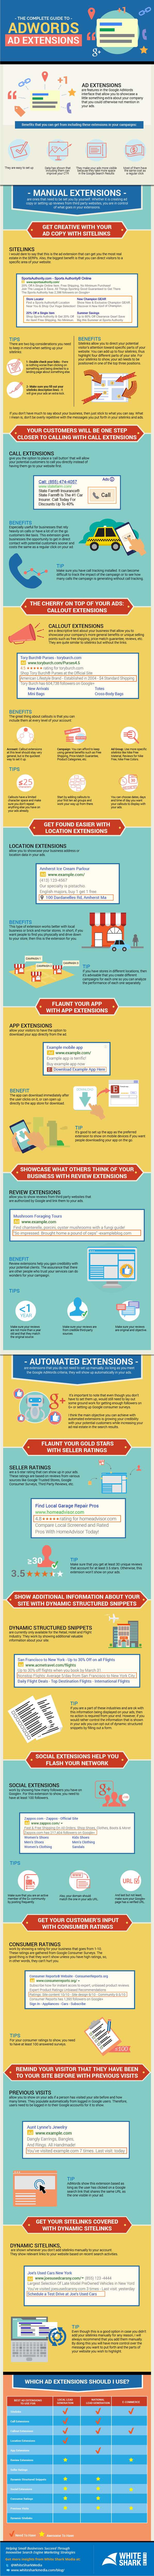 Guide to AdWords Ad Extensions [Infographic]